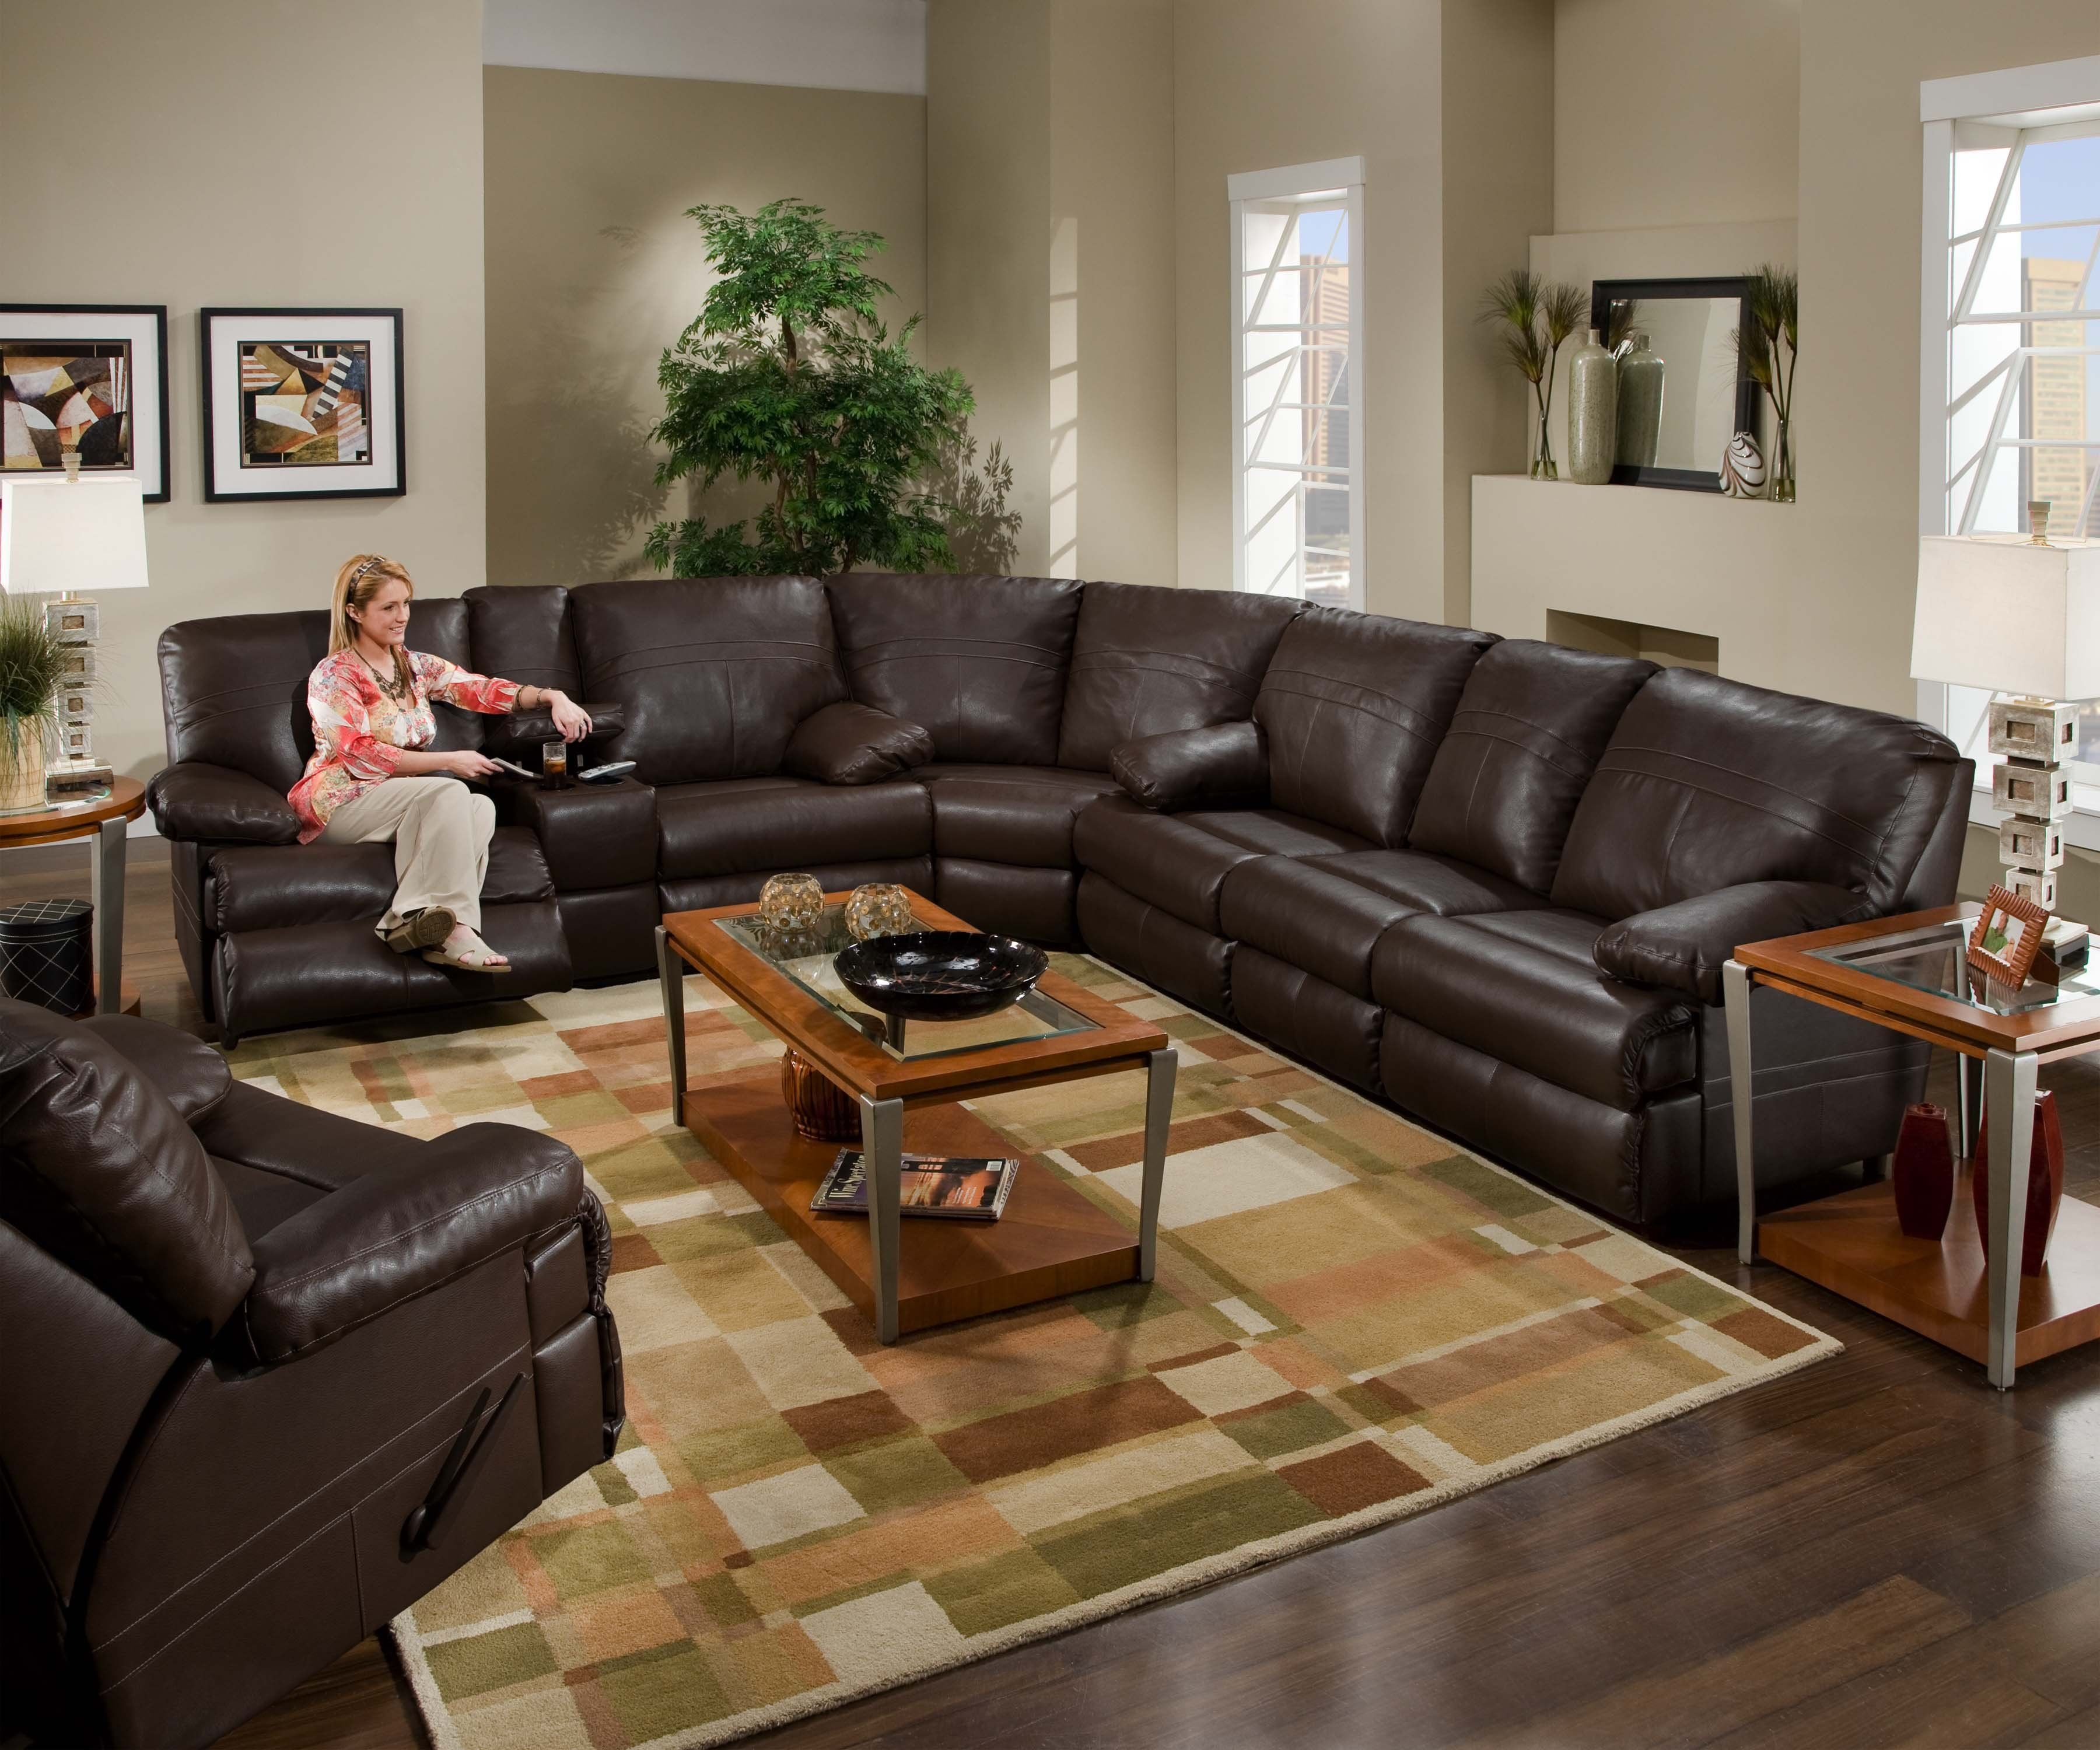 48 Beautiful Classy Curved Leather Sectional Sofa Ideas